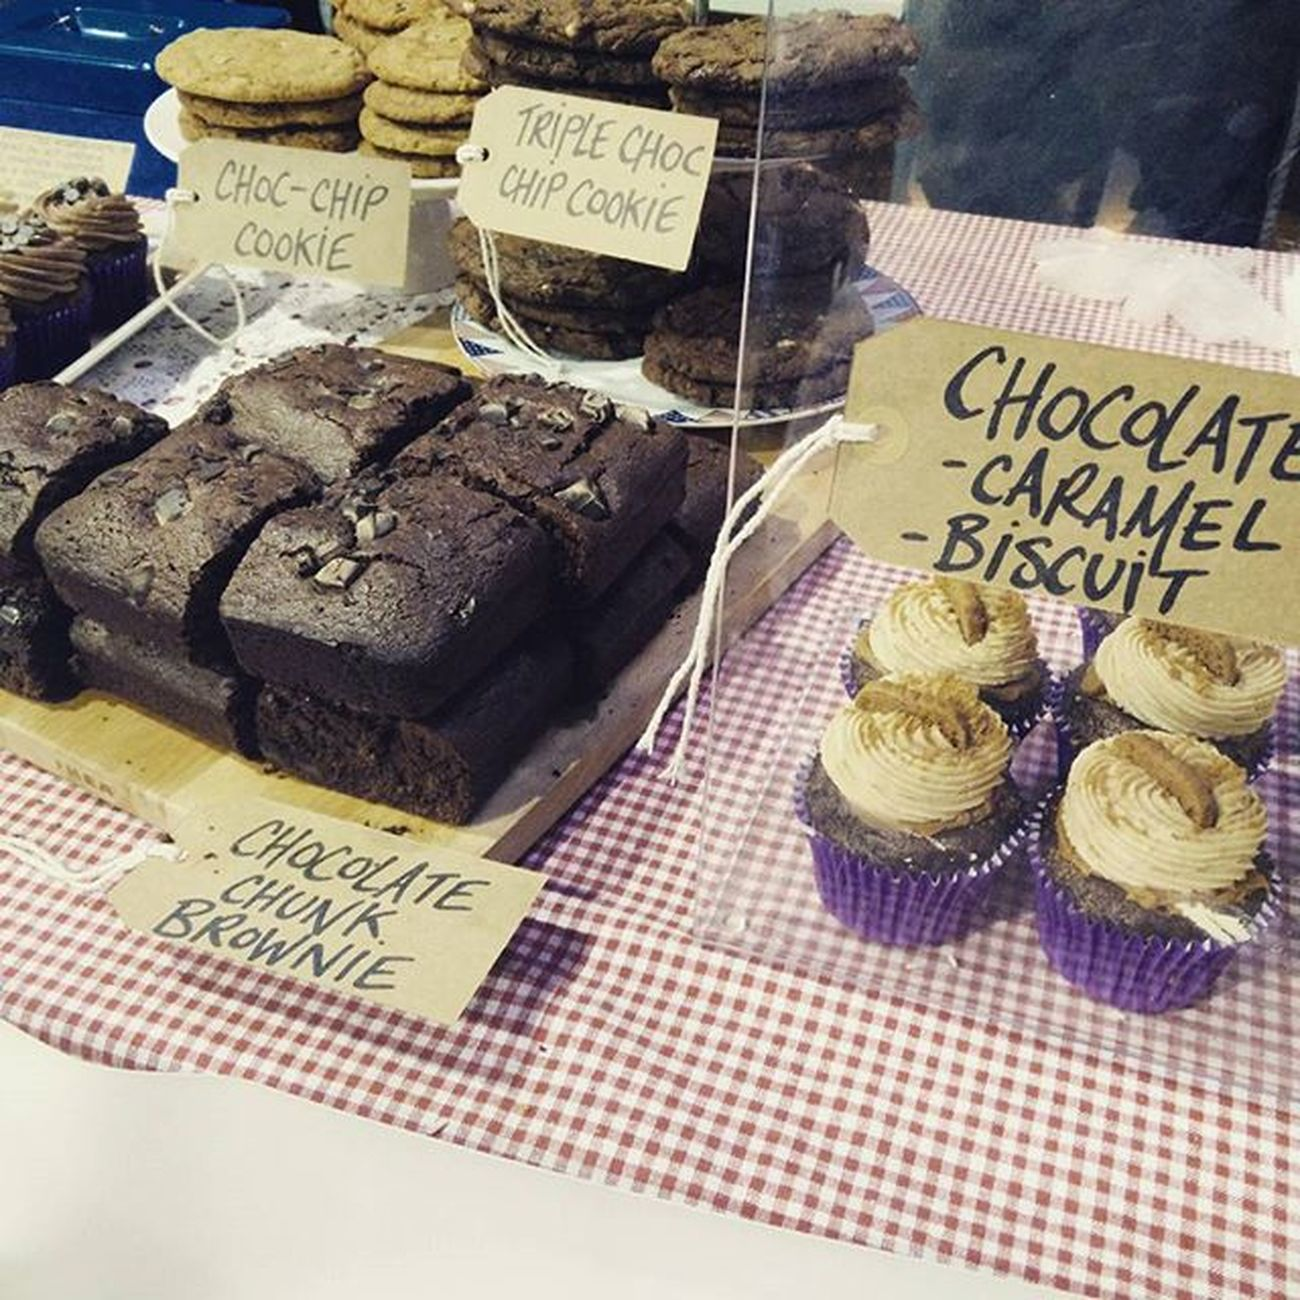 Thanks @careforacupcake_uk for the amazing vegan cakes 😍😋 Sat here with my little girl demolishing the chocolate brownie 👍 Cakes Vegancakes Vegan Choclatebrownie Cupcakes Treats Westmidlandsveganfestival Careforacupcake